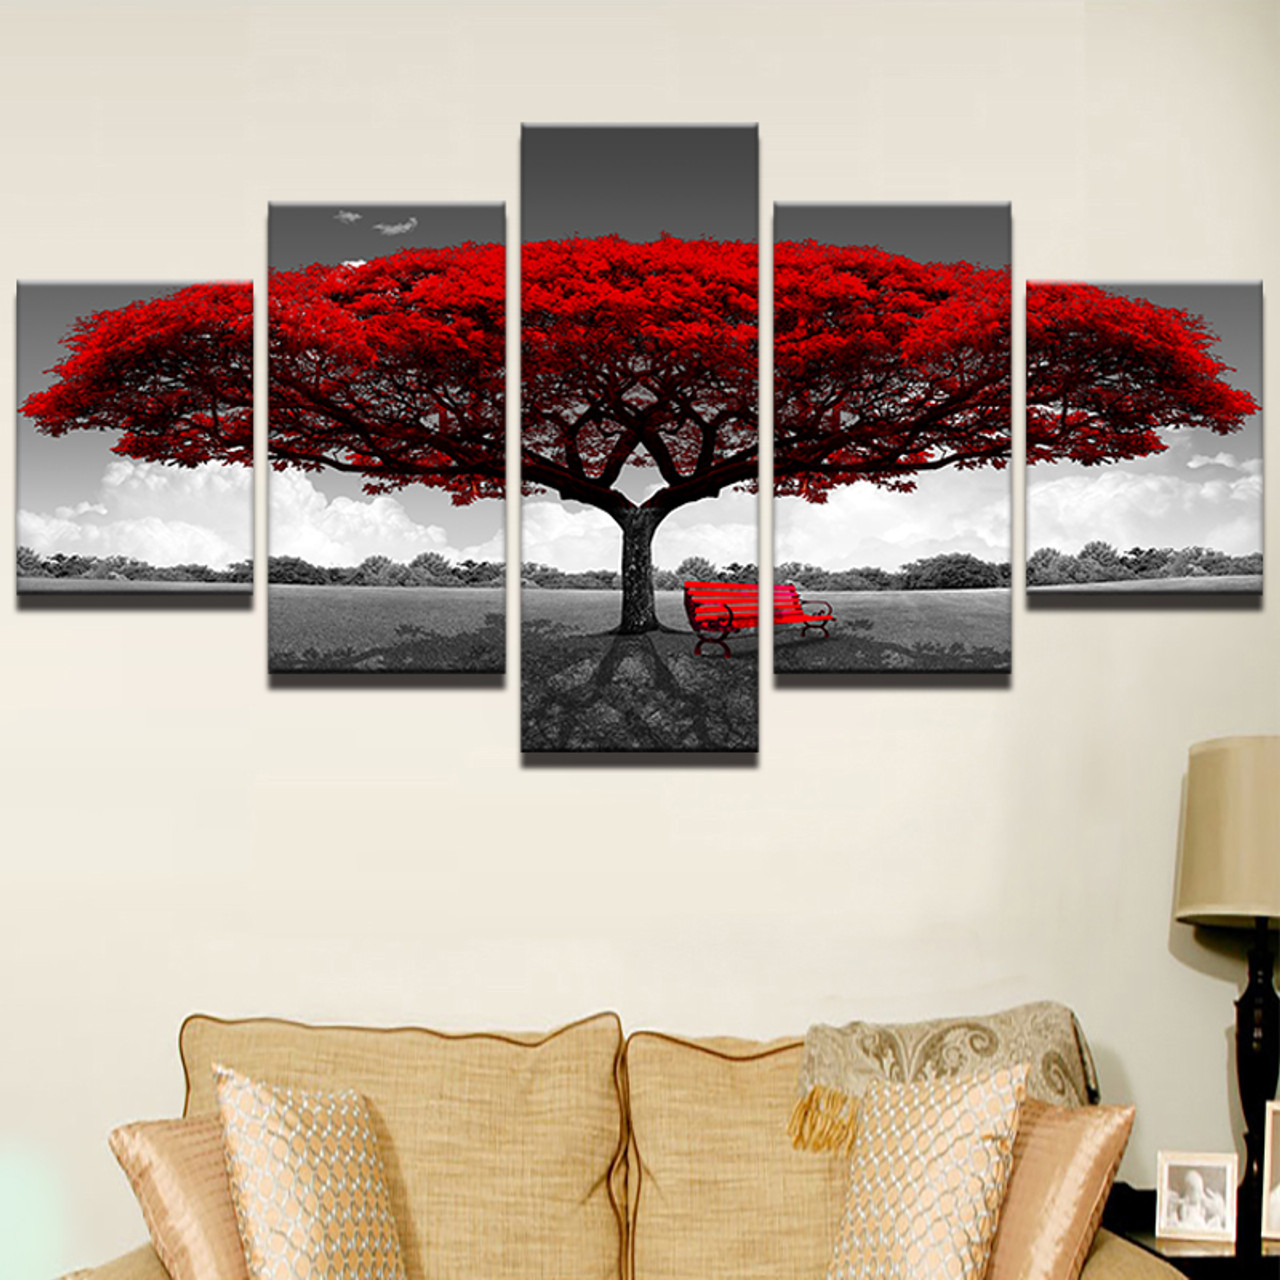 Home Decor Hd Printed Wall Art Pictures 5 Piece Red Tree Art Scenery Landscape Canvas Painting Home Decor For Living Room Pengda Onshopdeals Com